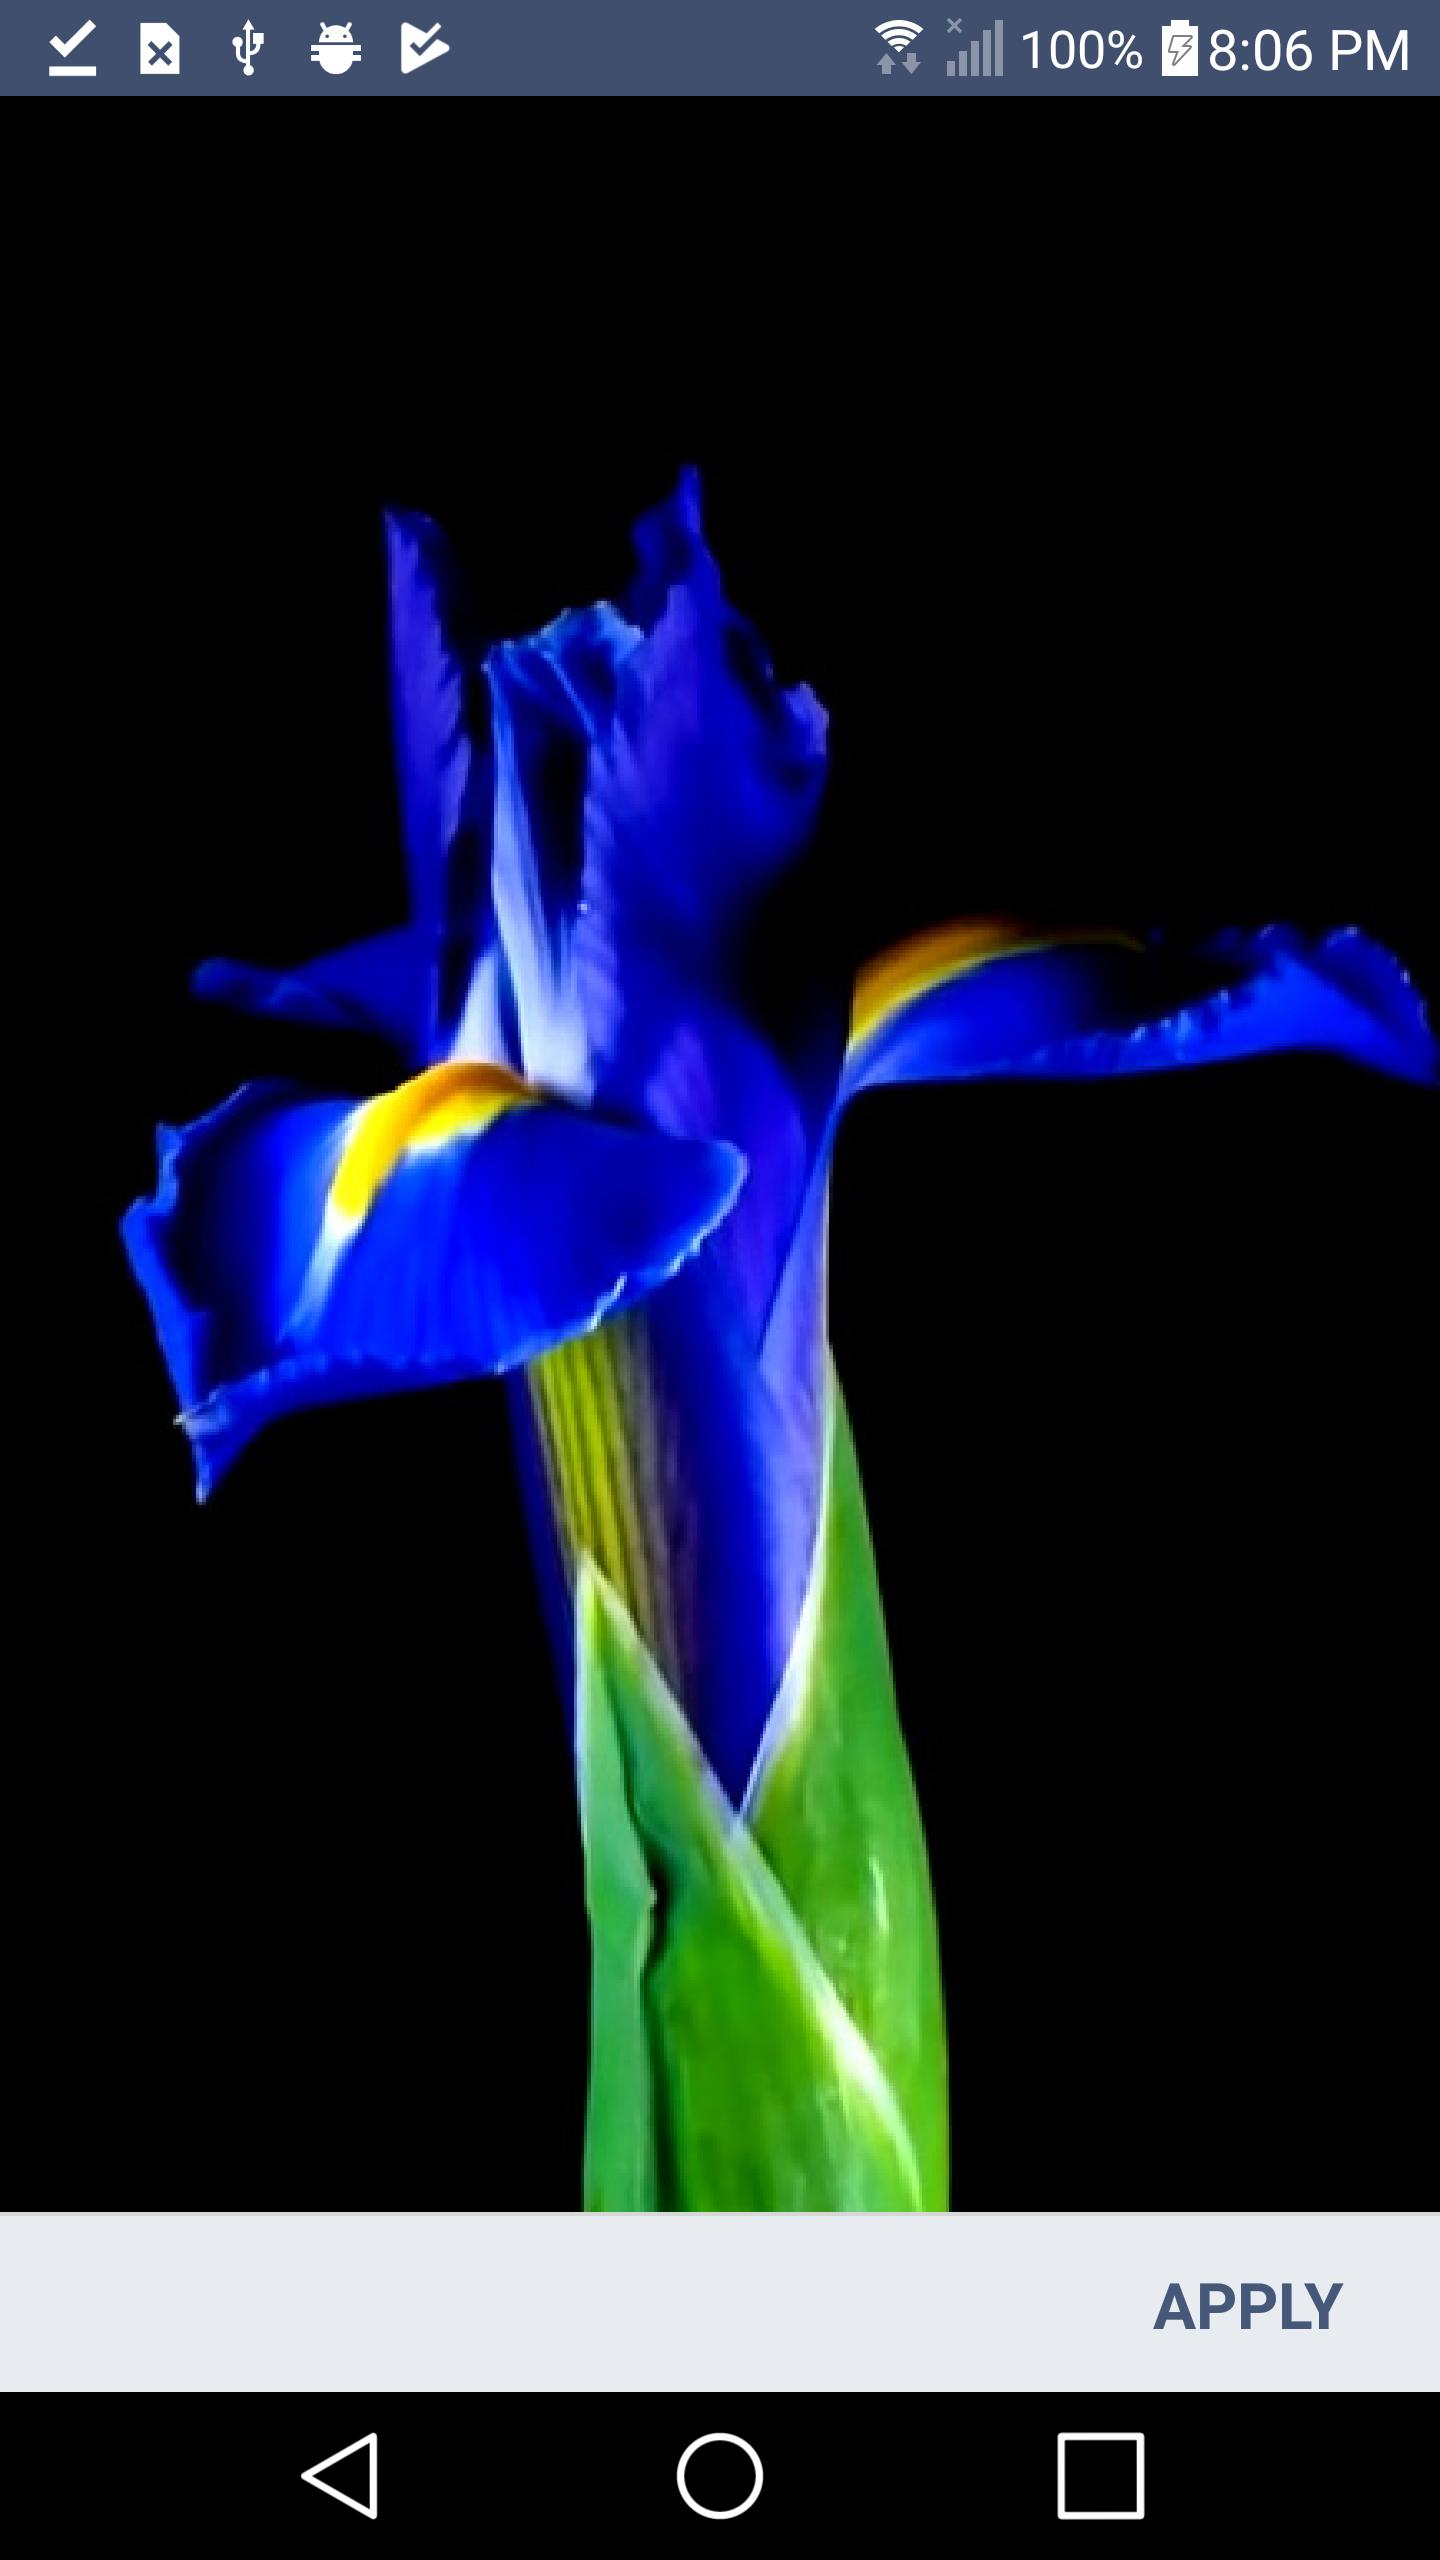 Flowers Live Wallpaper Hd 3d For Samsung Galaxy For Android Apk Download